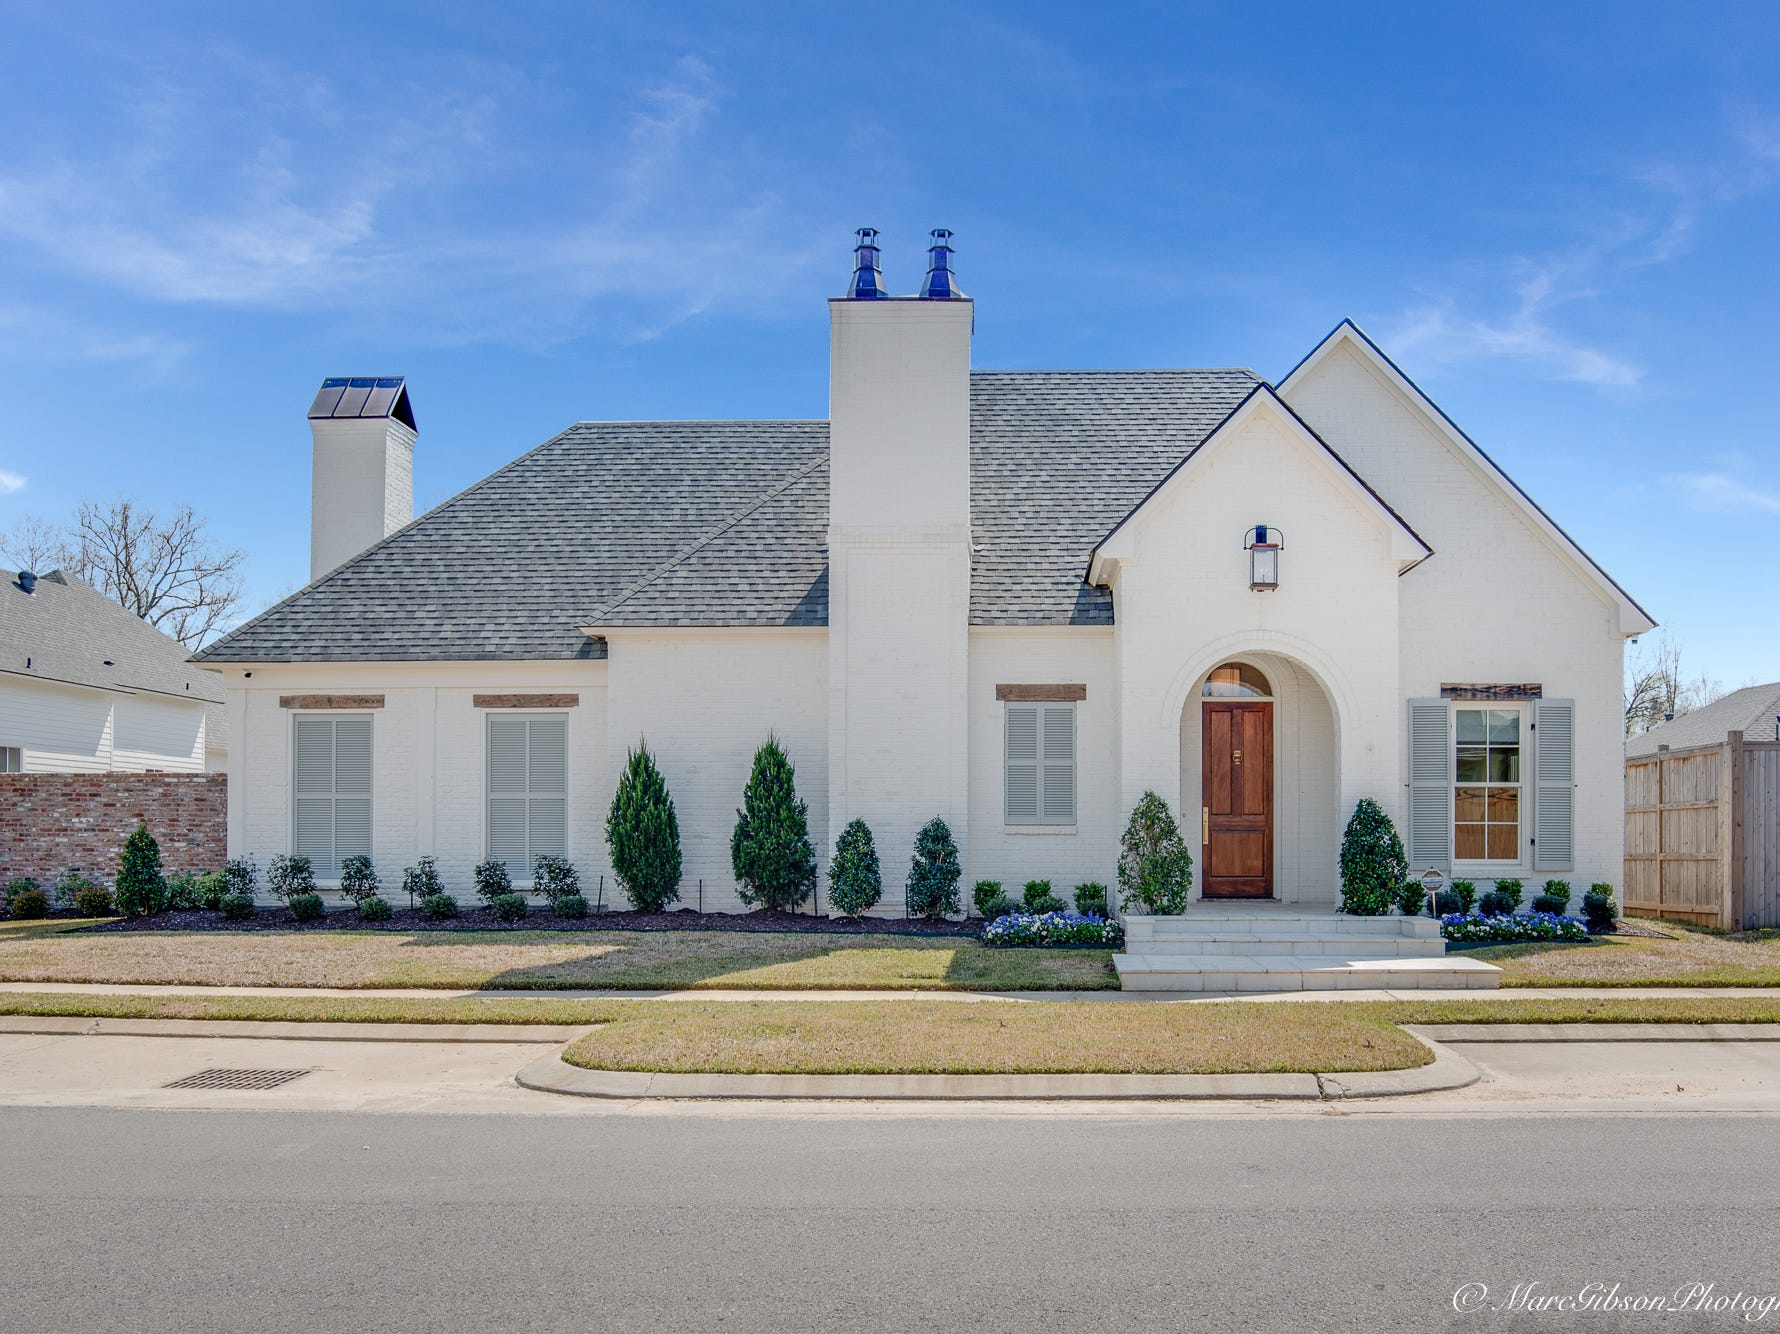 2080 Fairwoods Drive, Shreveport  Price: $925,000  Details: 4 bedrooms, 4 bathrooms, 3,408 square feet  Features: Designer home in upscale Provenance Community, open floor plan, 12 ft. ceilings, white oak flooring, built-ins, chef's dream kitchen, Miele appliances, butler's pantry, bar with wine fridge, backyard oasis with entertaining patio and inground pool.   Contact: Lynn Roos, 455-6004